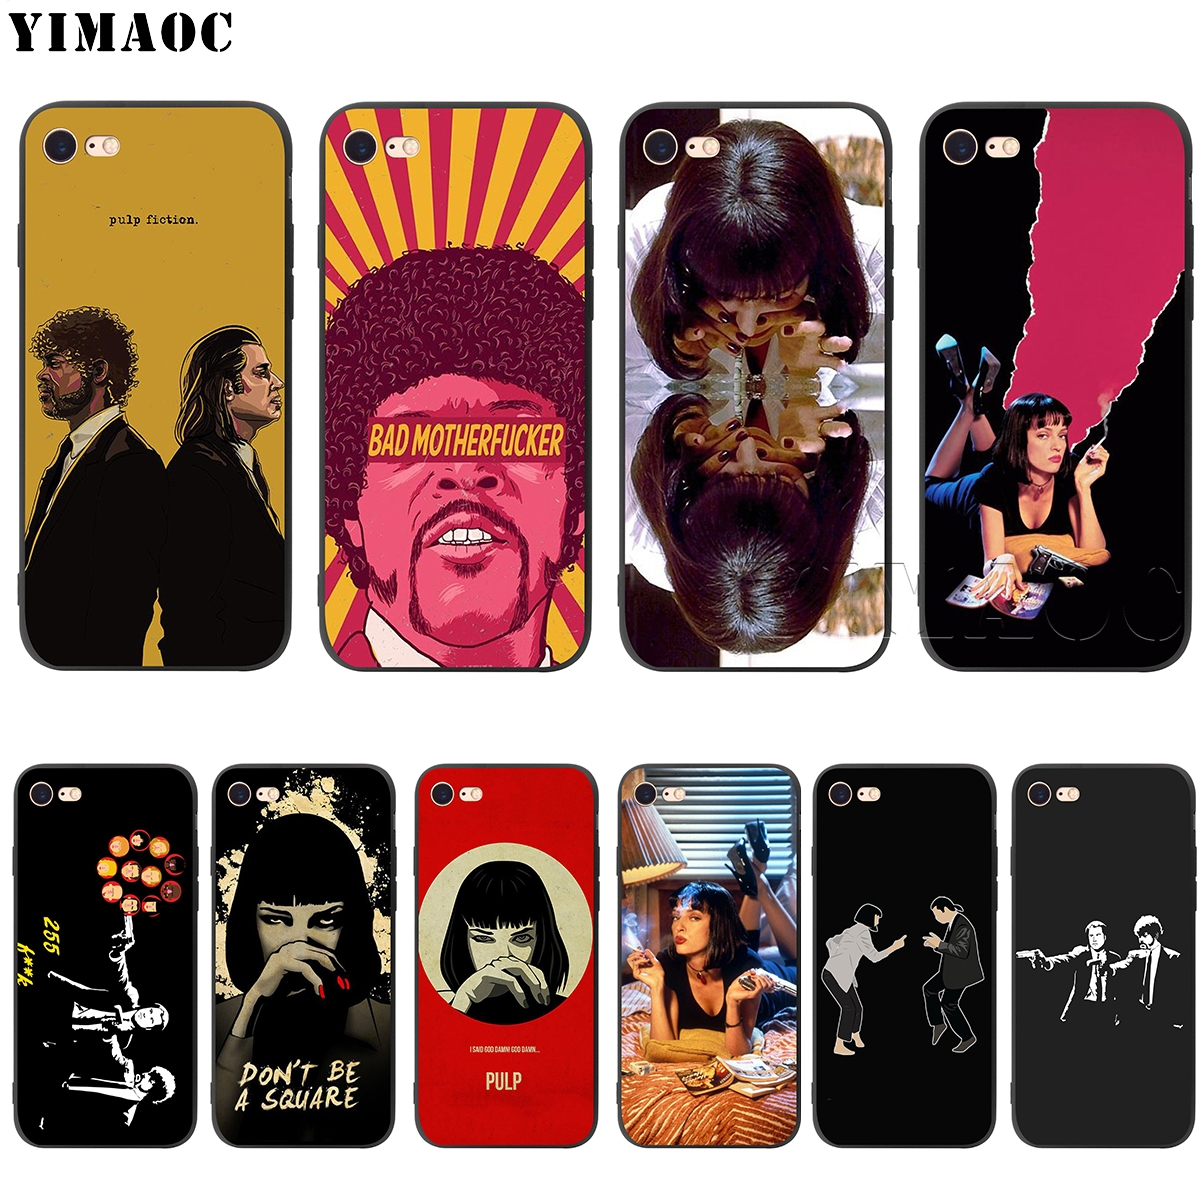 YIMAOC Pulp Fiction Silikon Weiche Fall für <font><b>iPhone</b></font> 11 Pro XS Max XR X 8 7 6 <font><b>6S</b></font> Plus 5 5S SE image